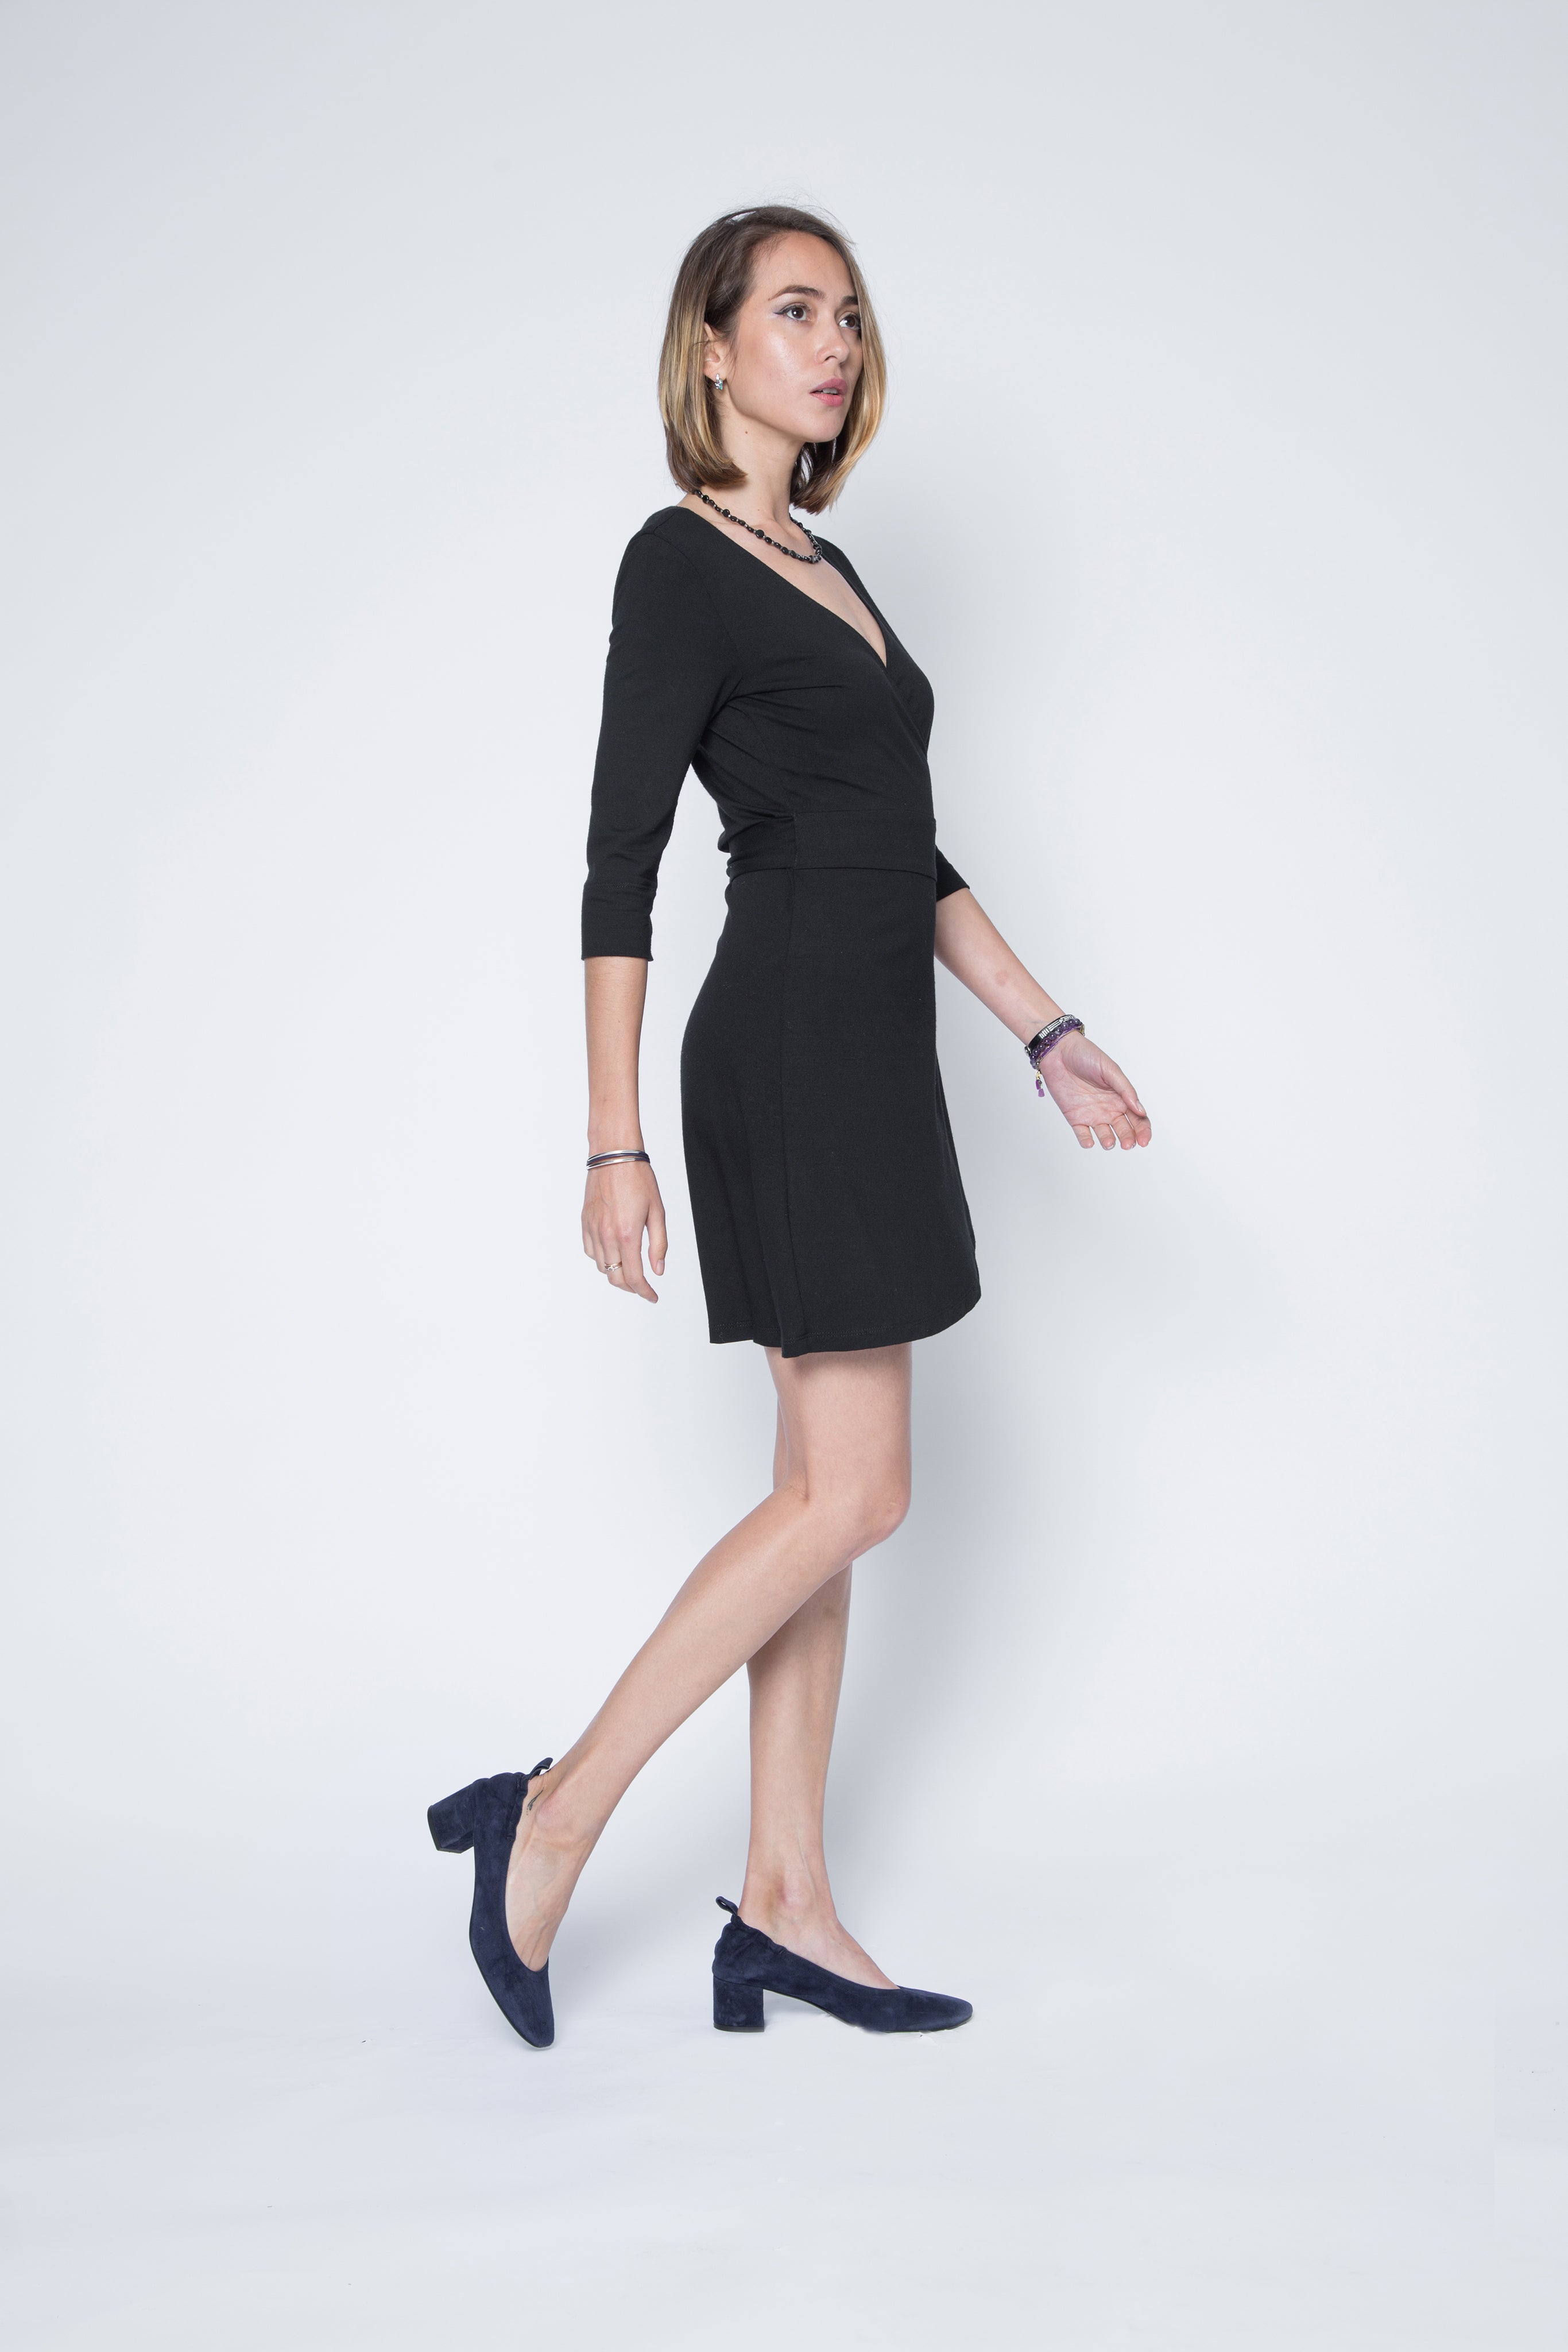 New! Signature Amanda Ballet Inspired Wrap Dress in Stretchable Jersey